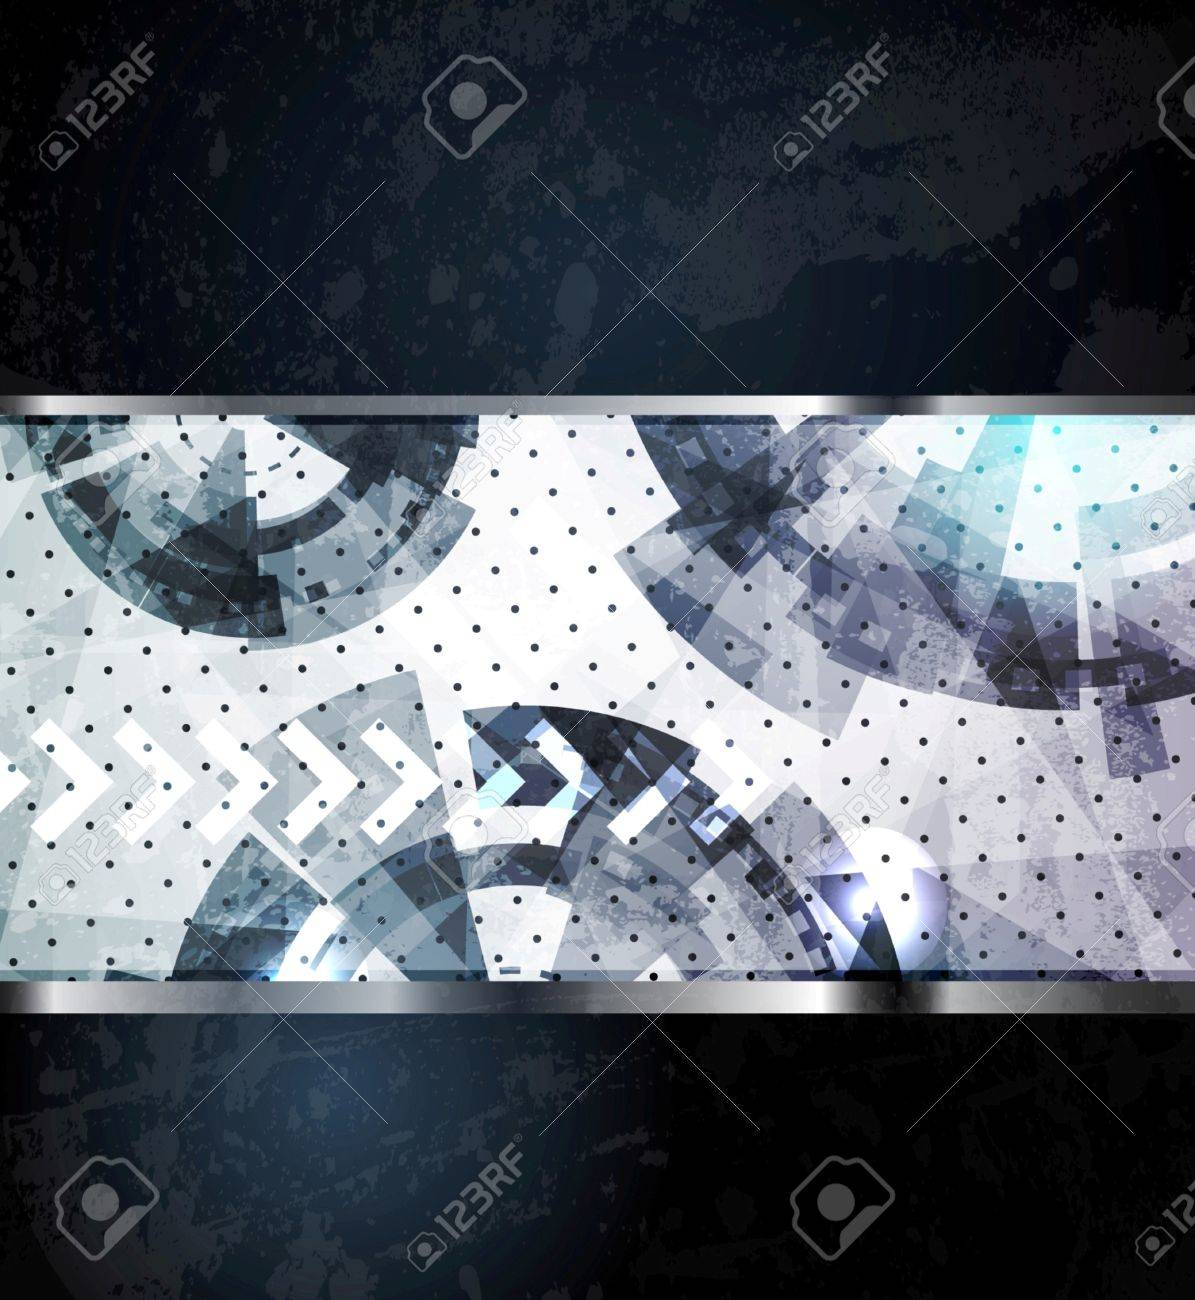 Abstract technology background - vector illustration. For design. Stock Vector - 9932556